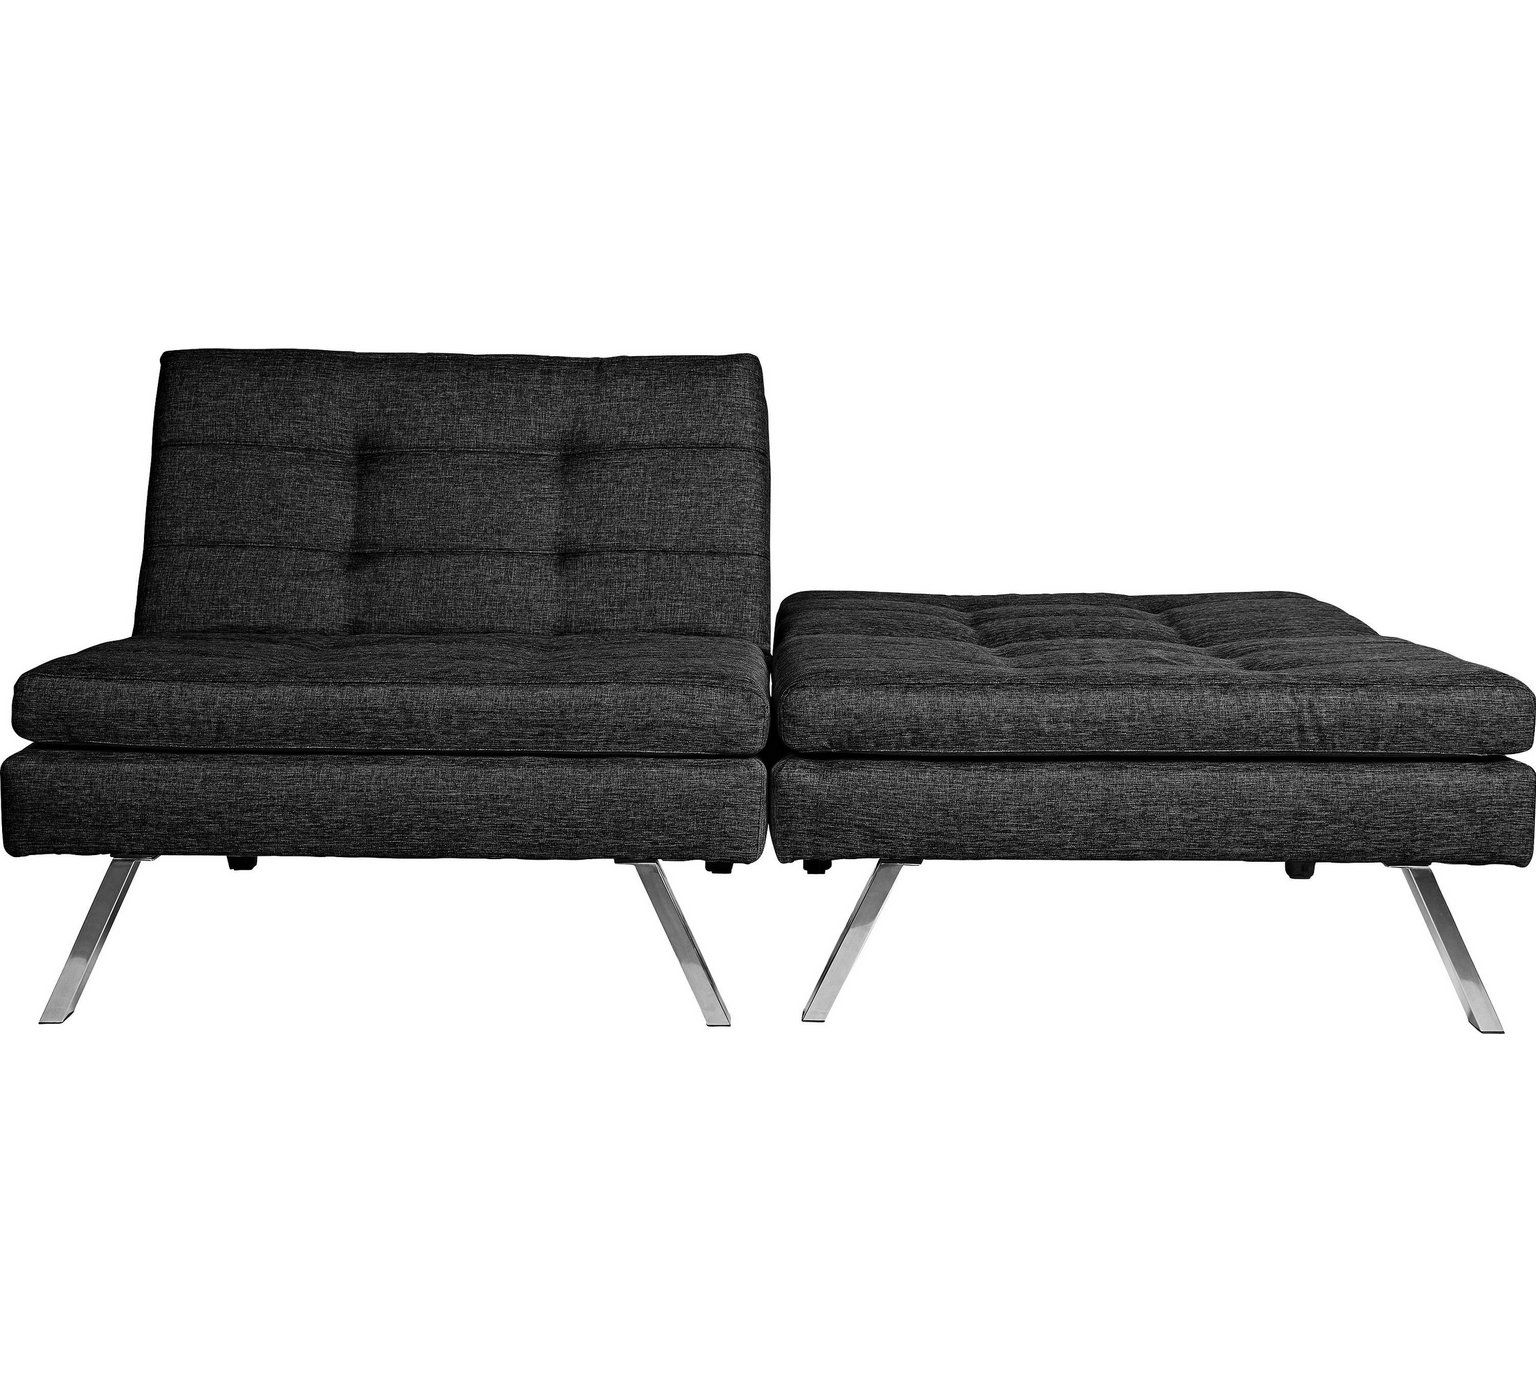 Awe Inspiring Buy Hygena Duo 2 Seater Clic Clac Sofa Bed Charcoal At Machost Co Dining Chair Design Ideas Machostcouk